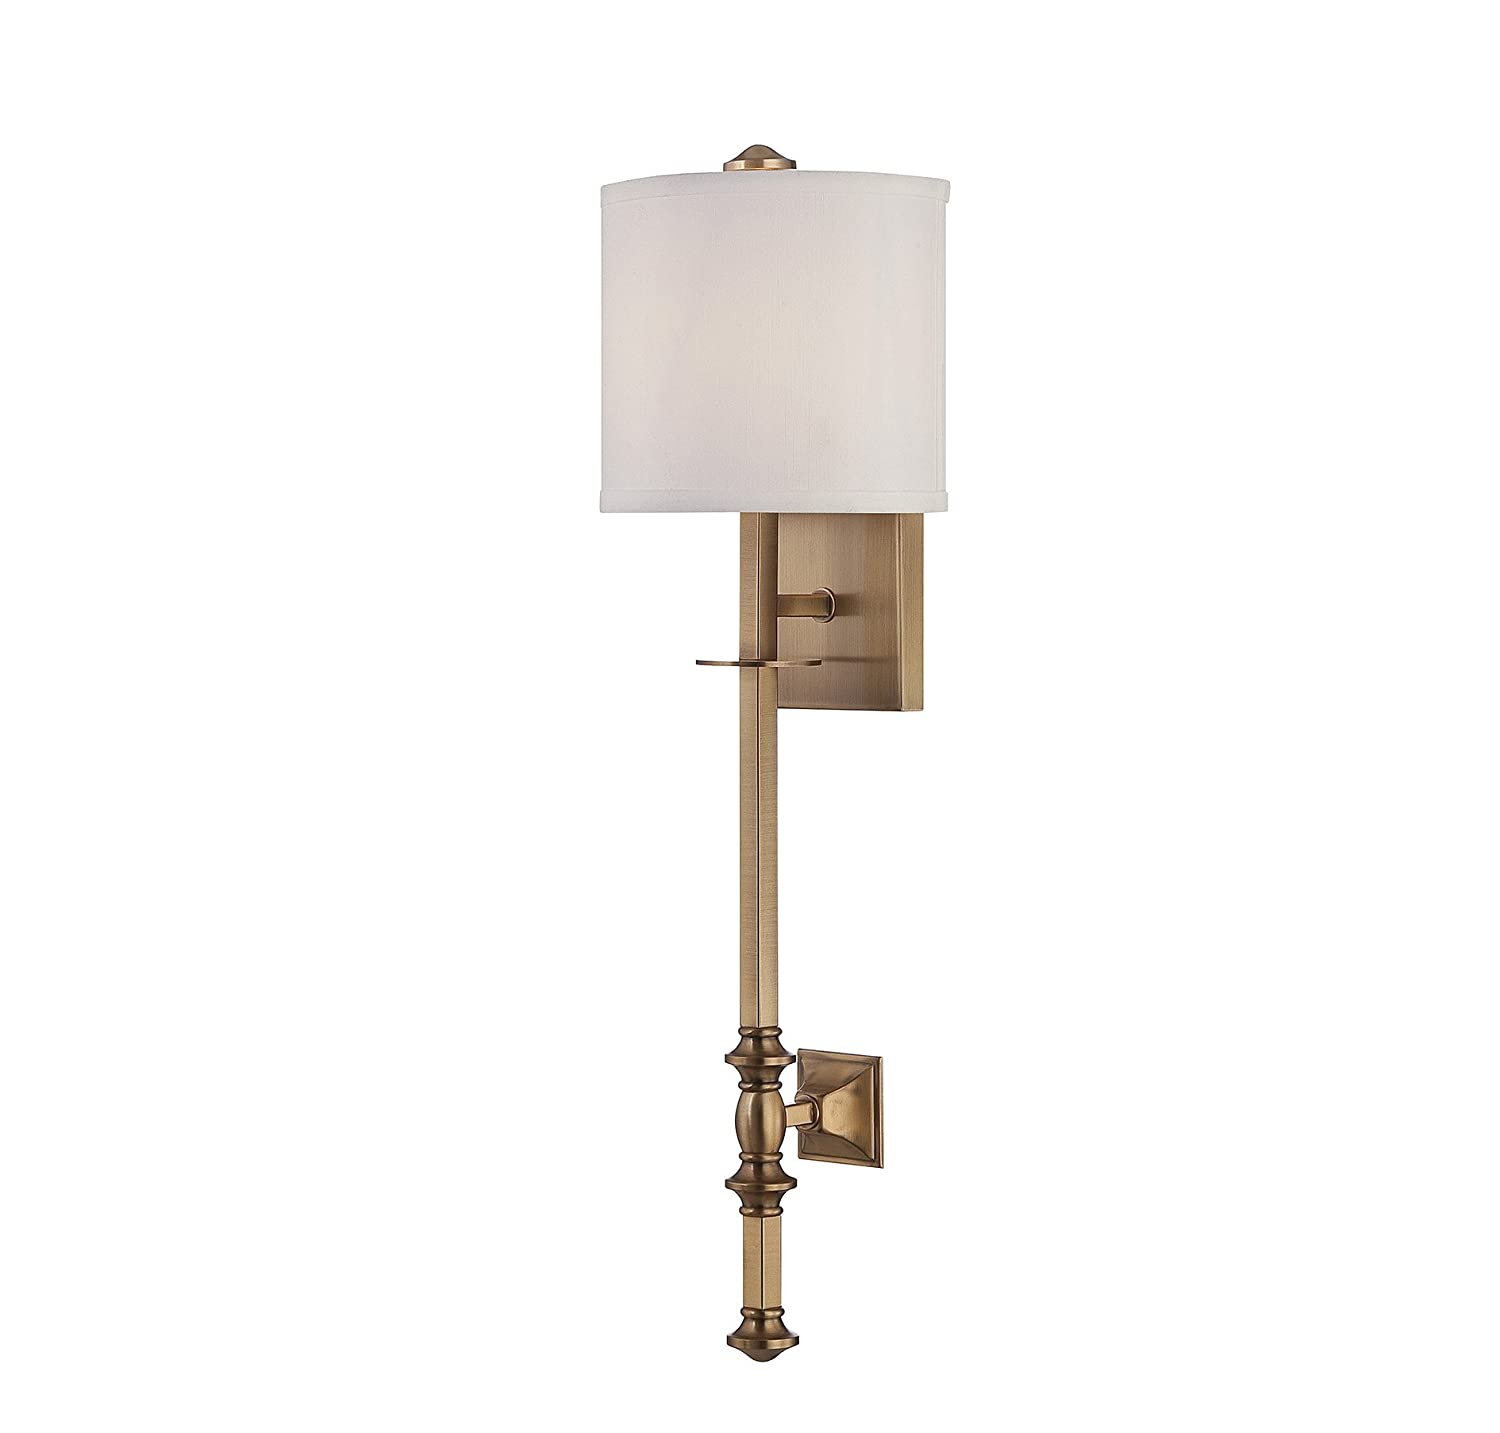 Savoy house 9 7140 1 322 devon 1 light wall sconce with white savoy house 9 7140 1 322 devon 1 light wall sconce with white fabric shade warm brass finish amazon amipublicfo Image collections